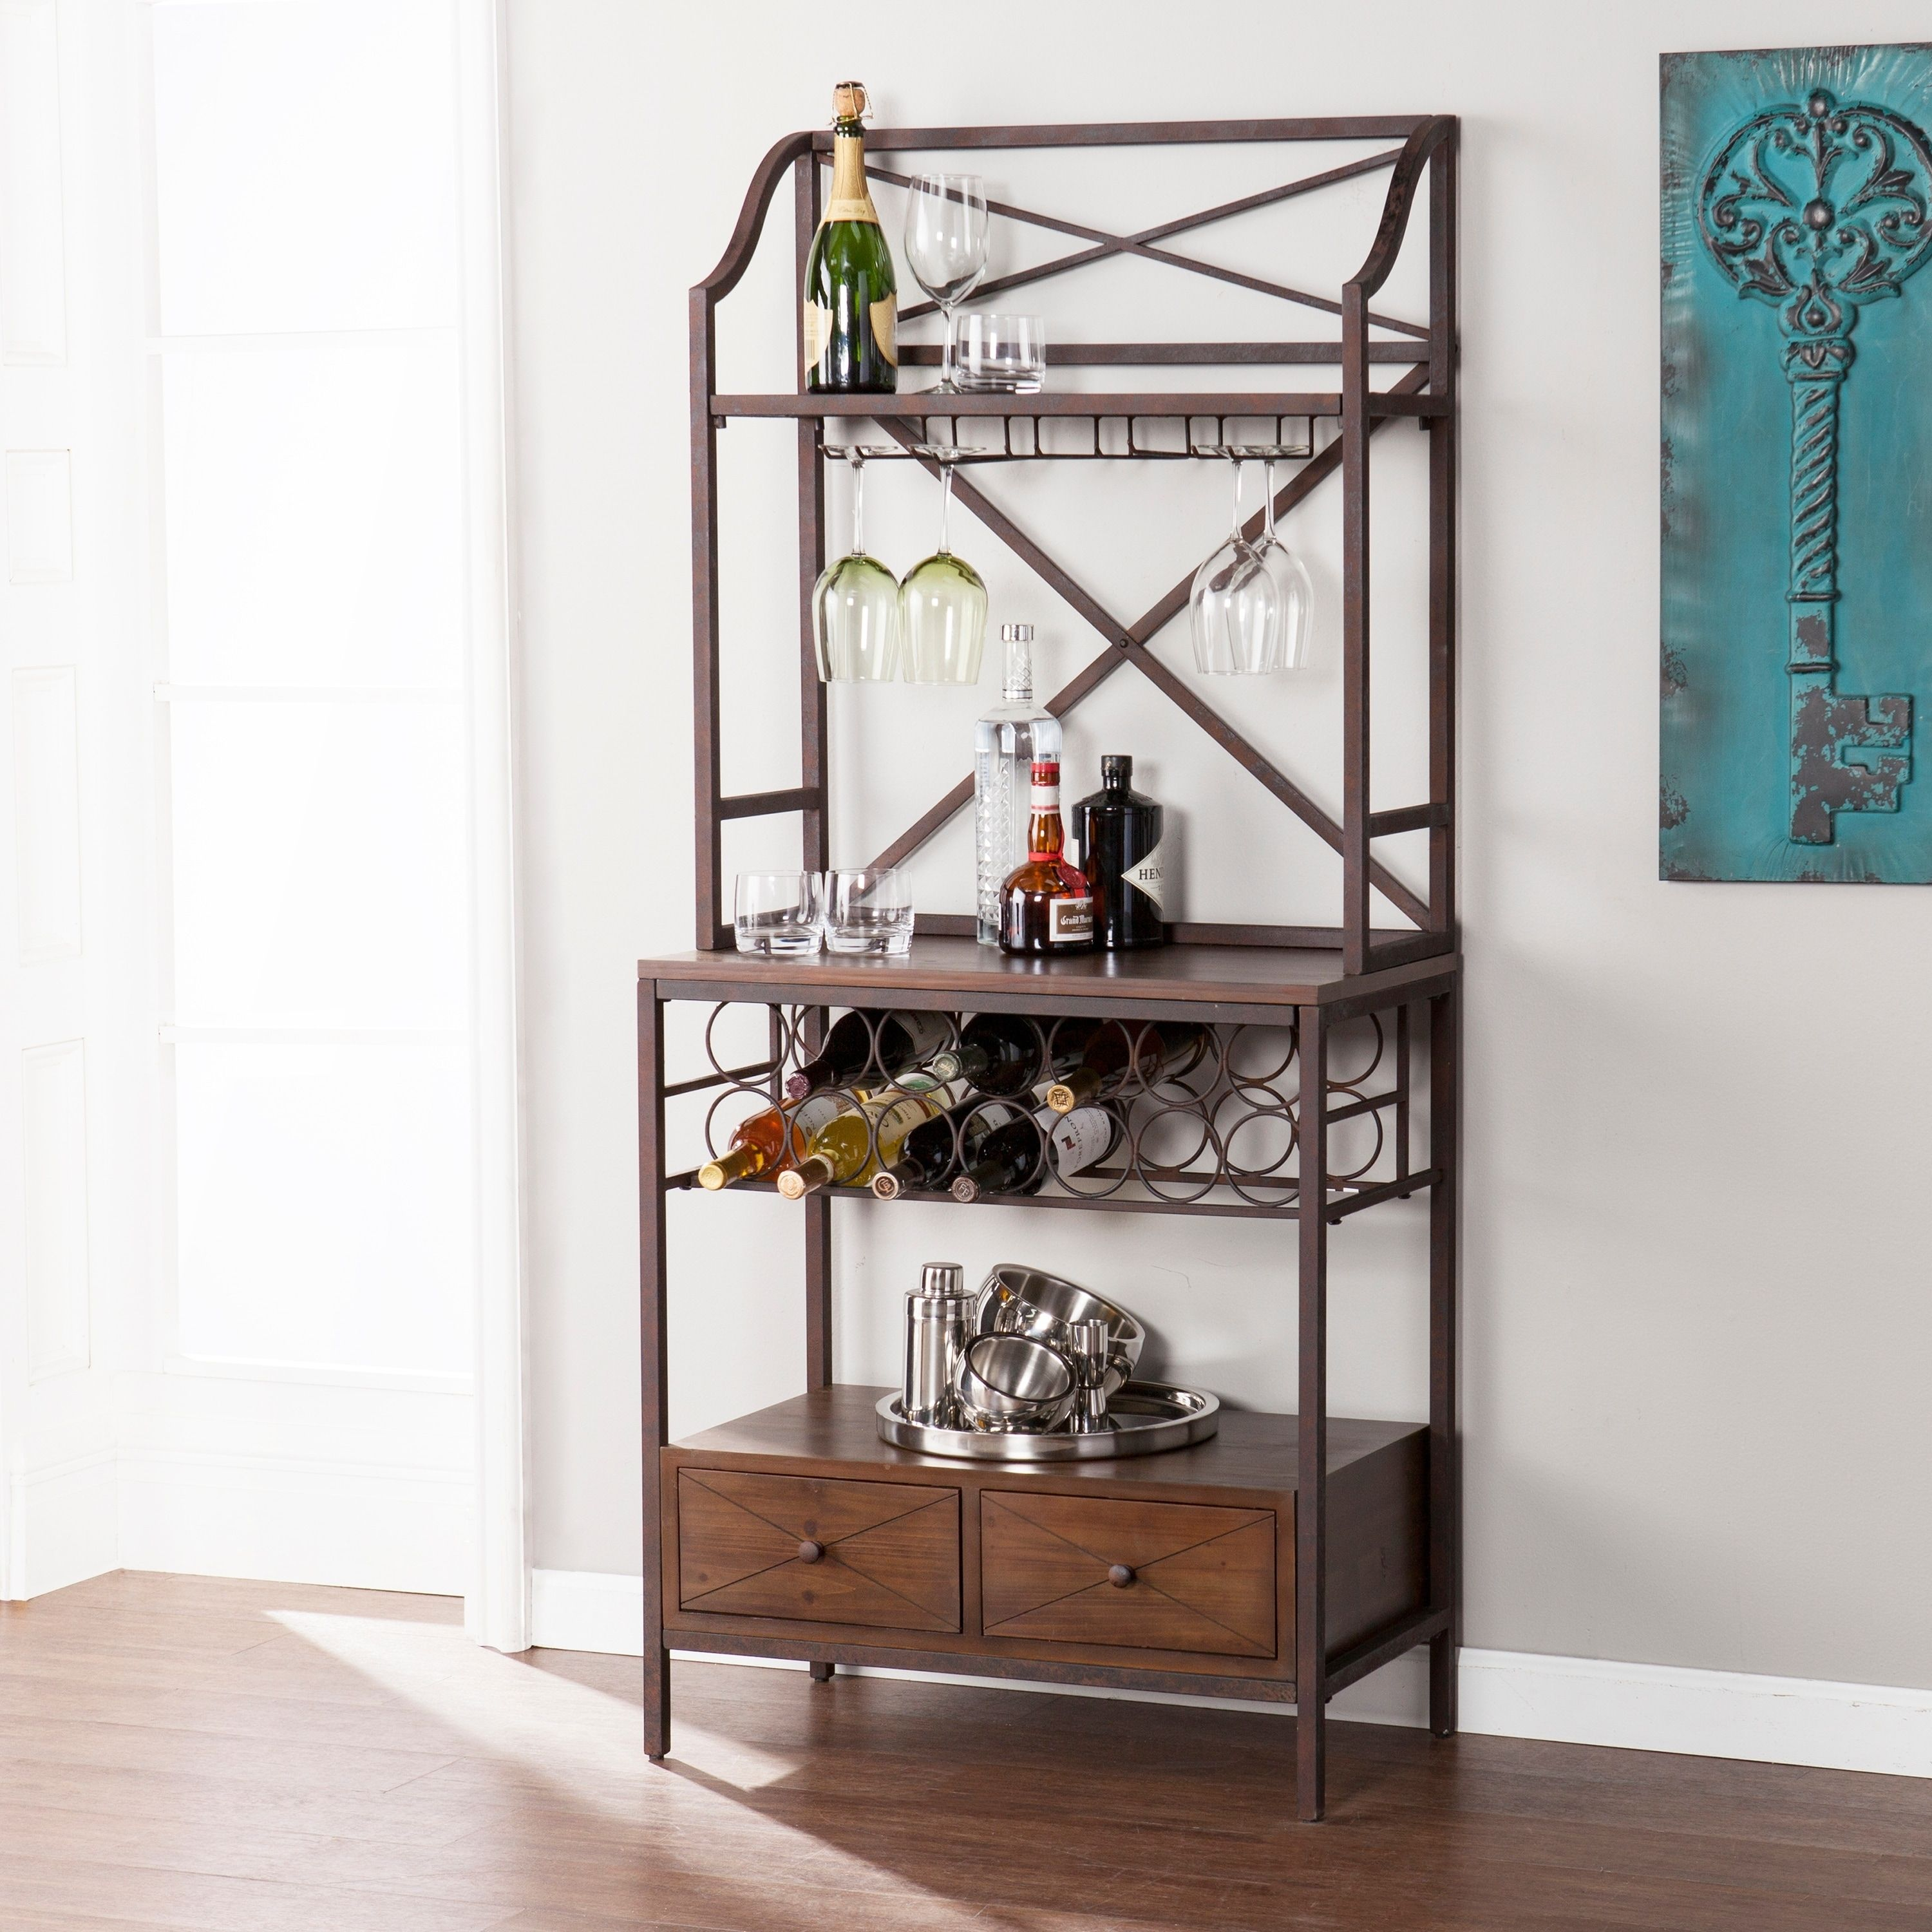 Online Shopping Bedding Furniture Electronics Jewelry Clothing More Bakers Rack Microwave Stand Wholesale Furniture